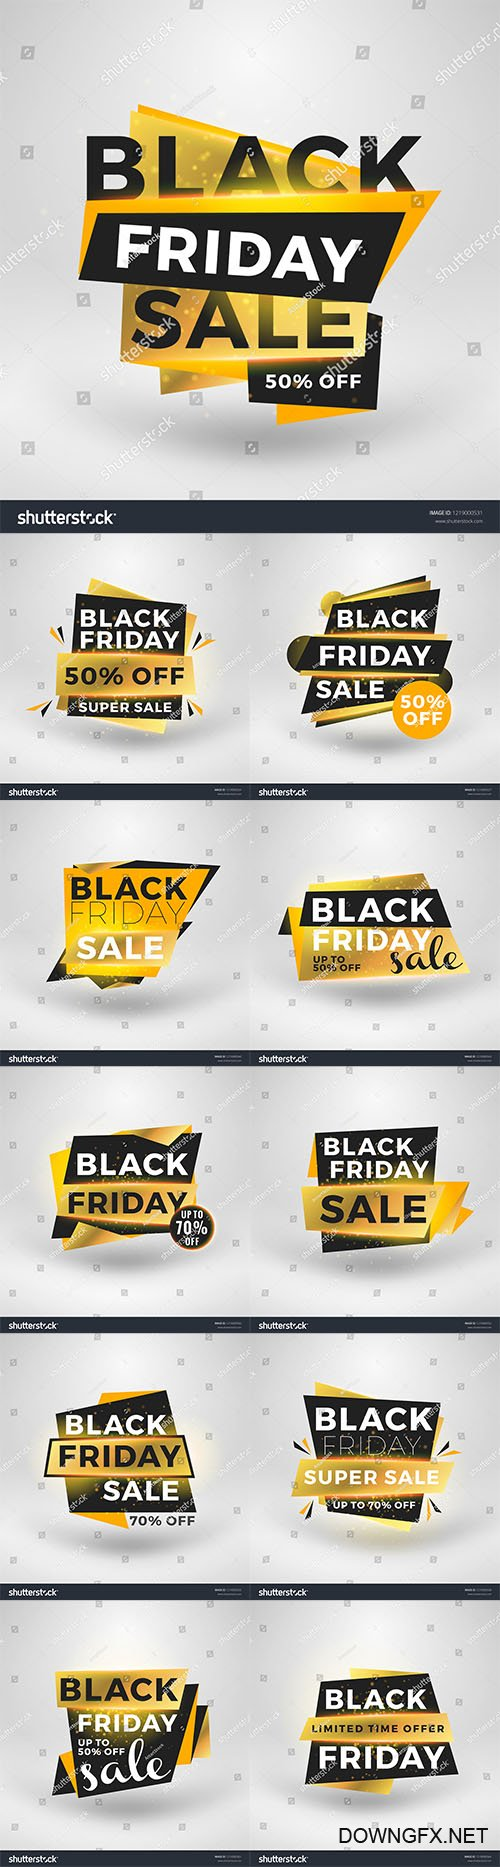 Vector Black Friday sale stickers. Discount banners